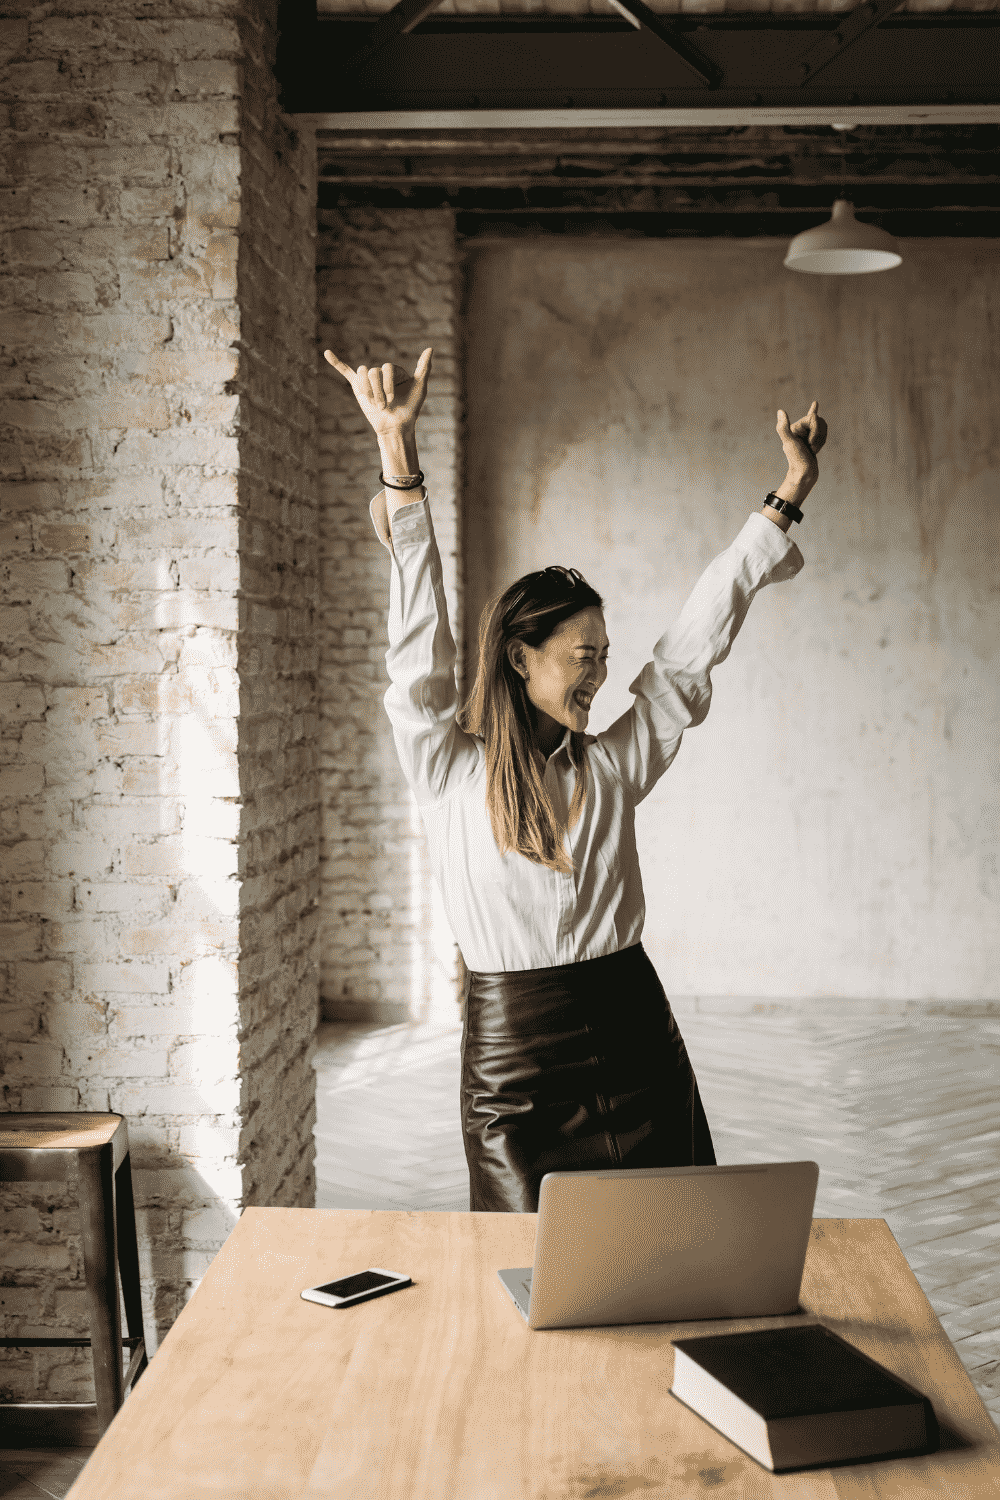 A woman stands with her hands in the air as if dancing while her computer sits on the table in front of her